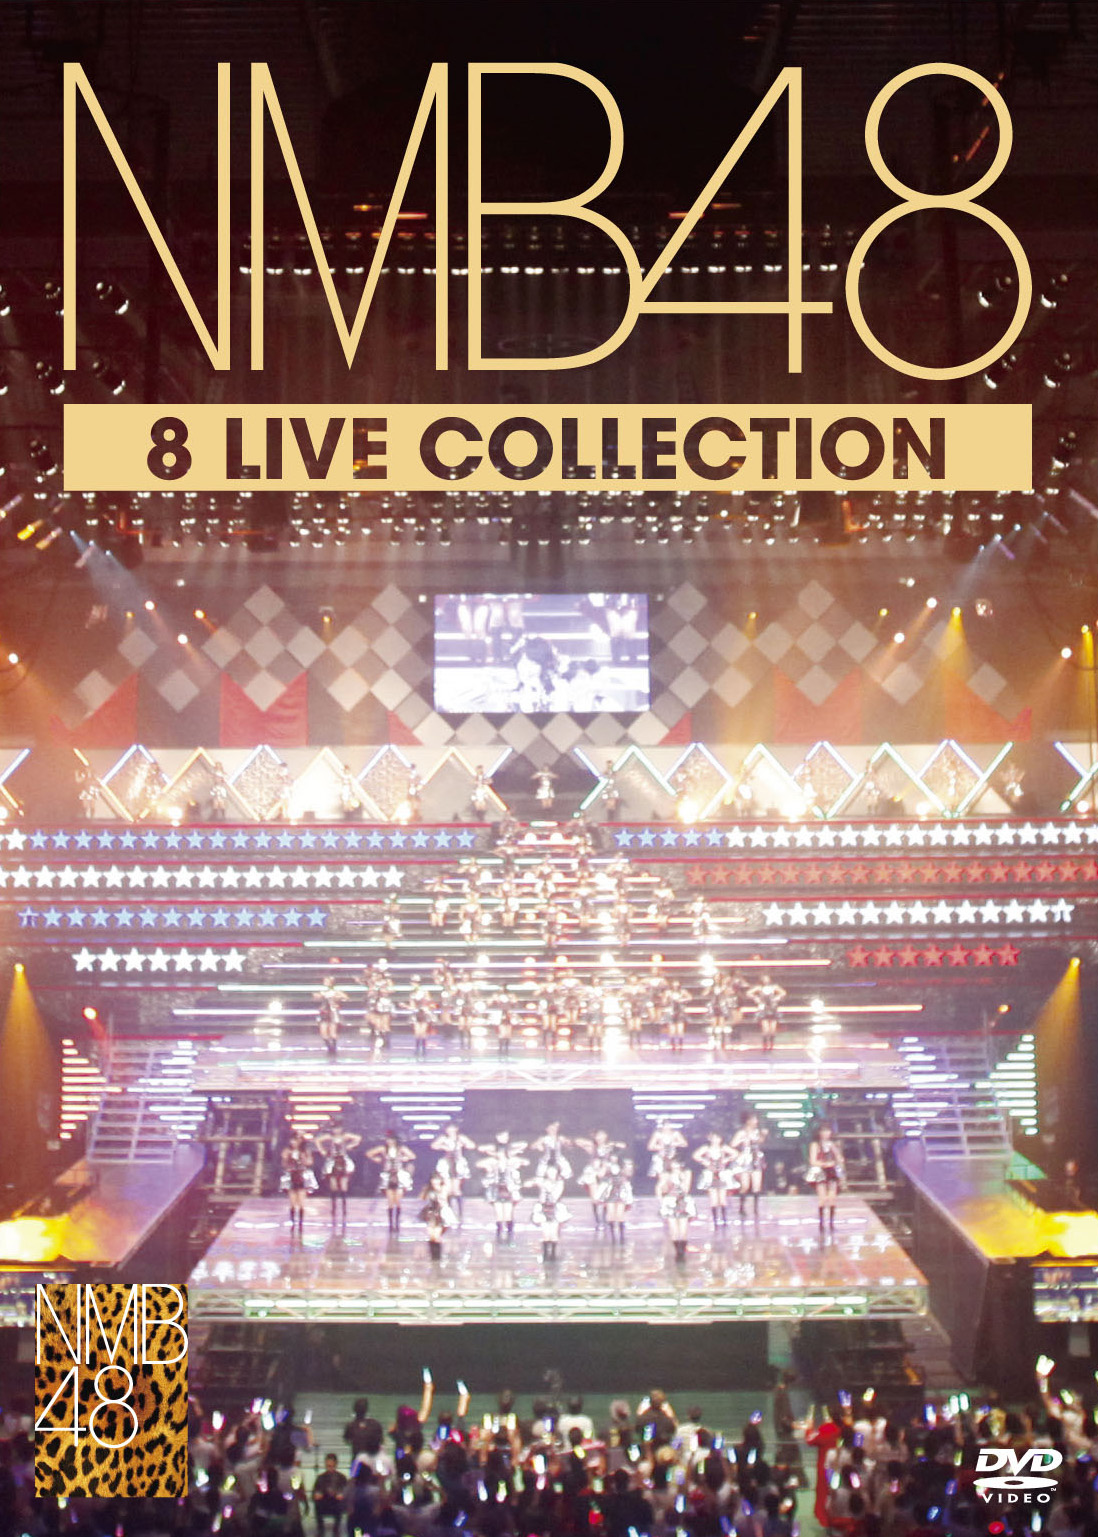 NMB48 8 Live Collection